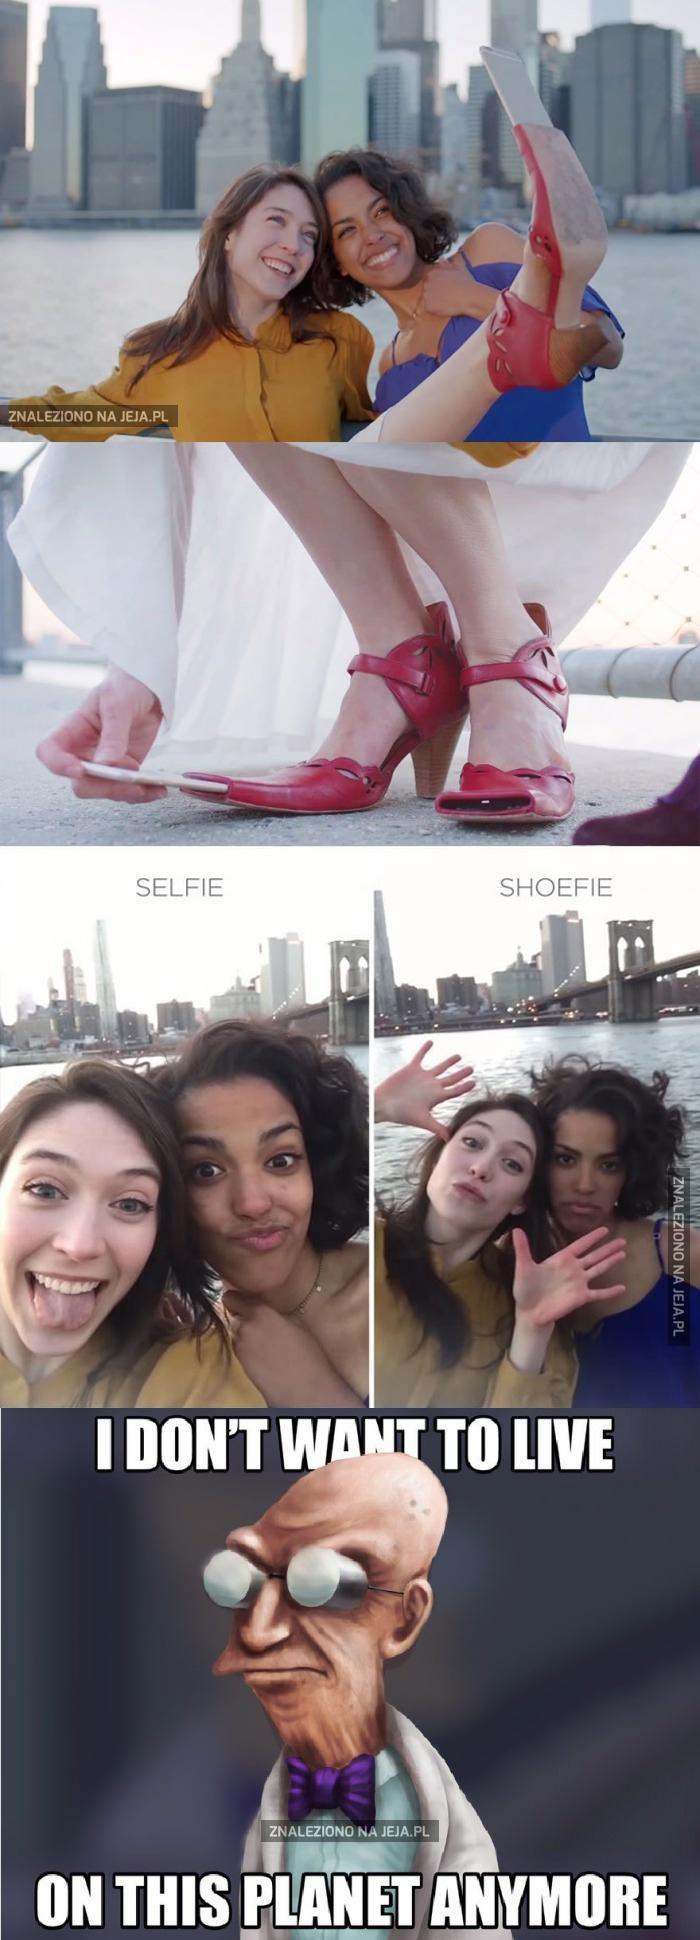 But first, let me take a shoelfie!